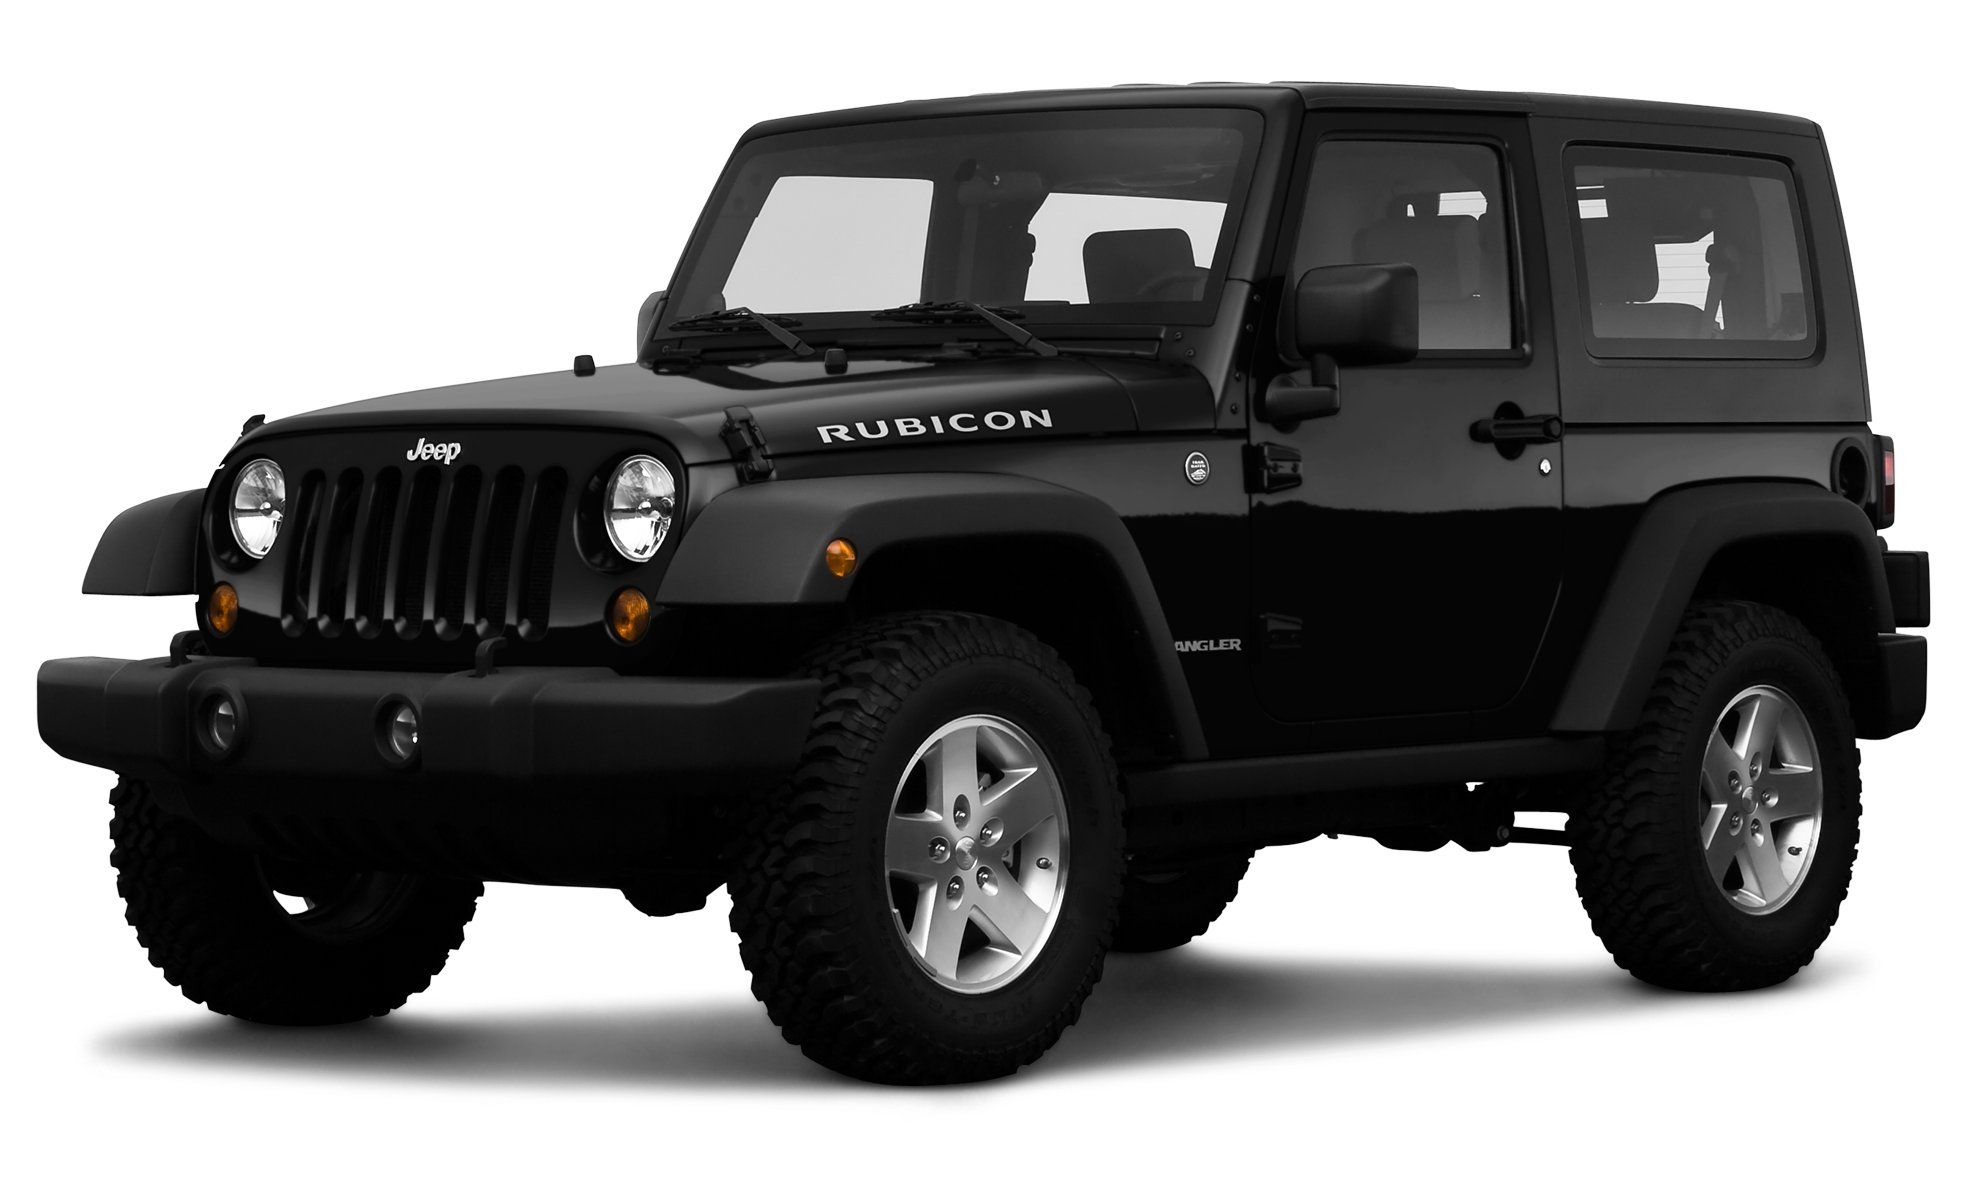 2009 Jeep Wrangler Rubicon, 4-Wheel Drive 2-Door ...